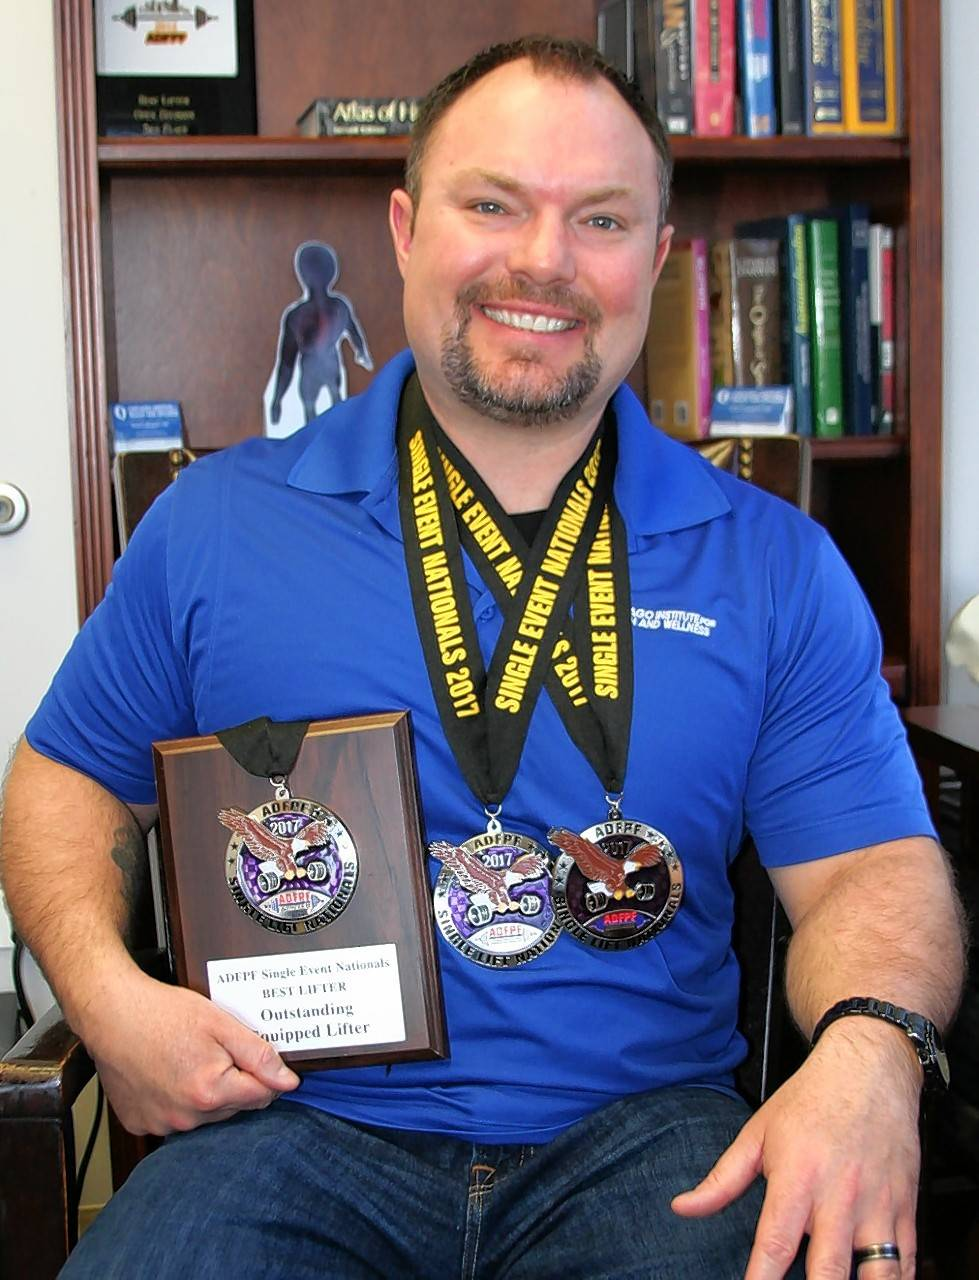 Kukec's People: Elgin chiropractic doctor also record-setting weightlifter